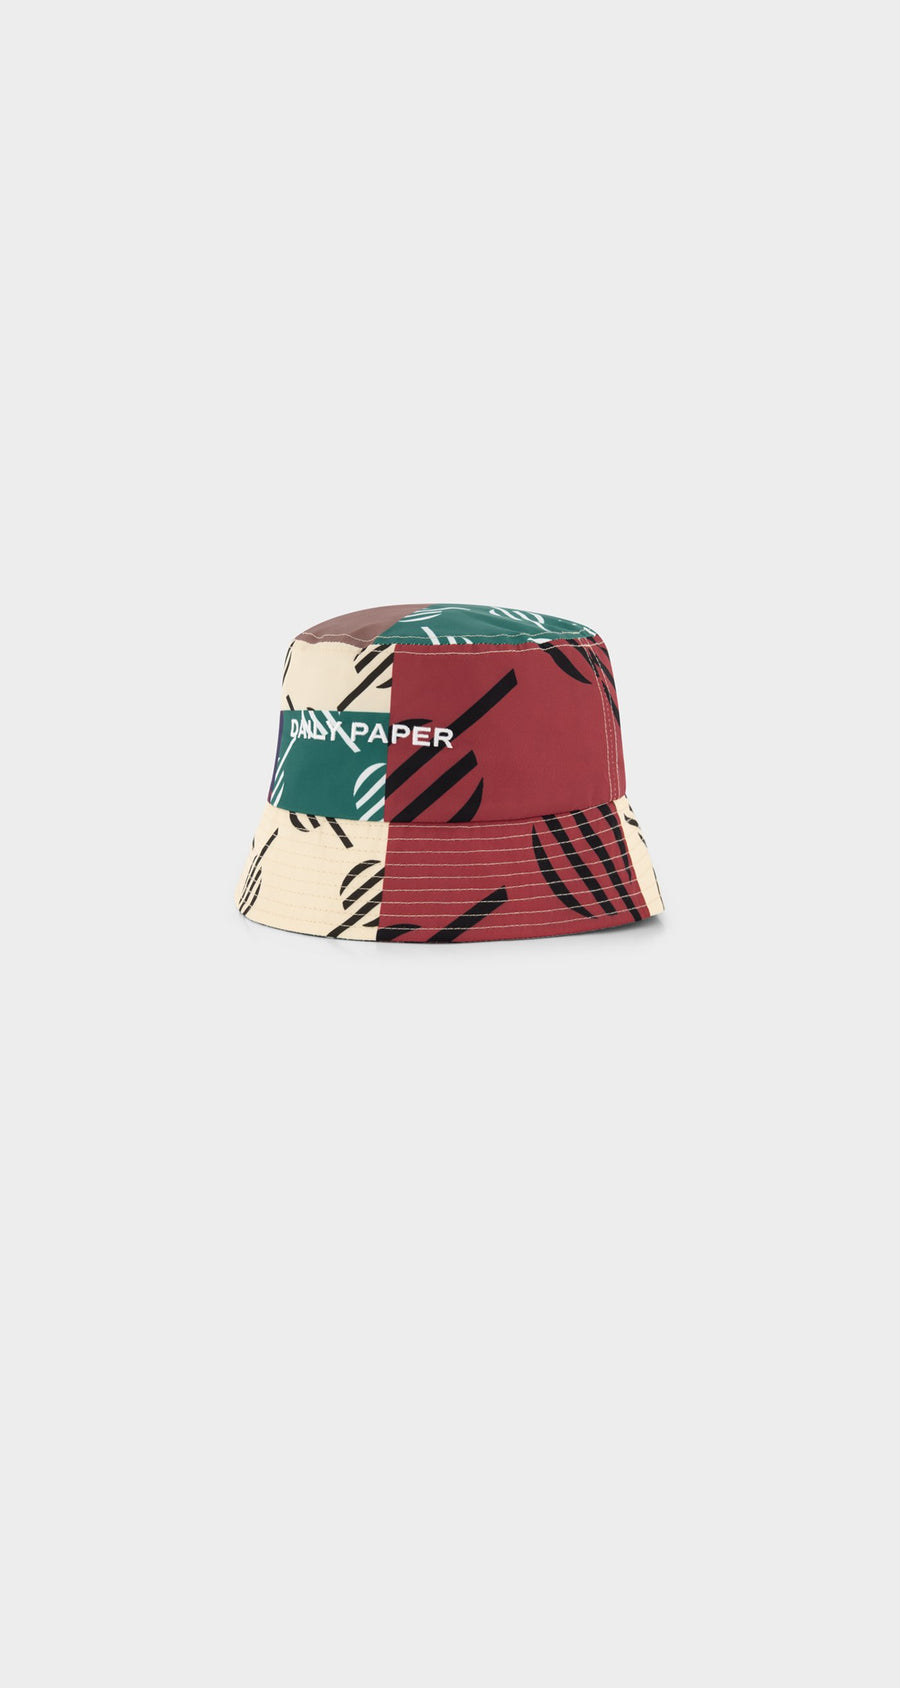 Daily Paper - Multi Coloured Repatch Bucket Hat - Front